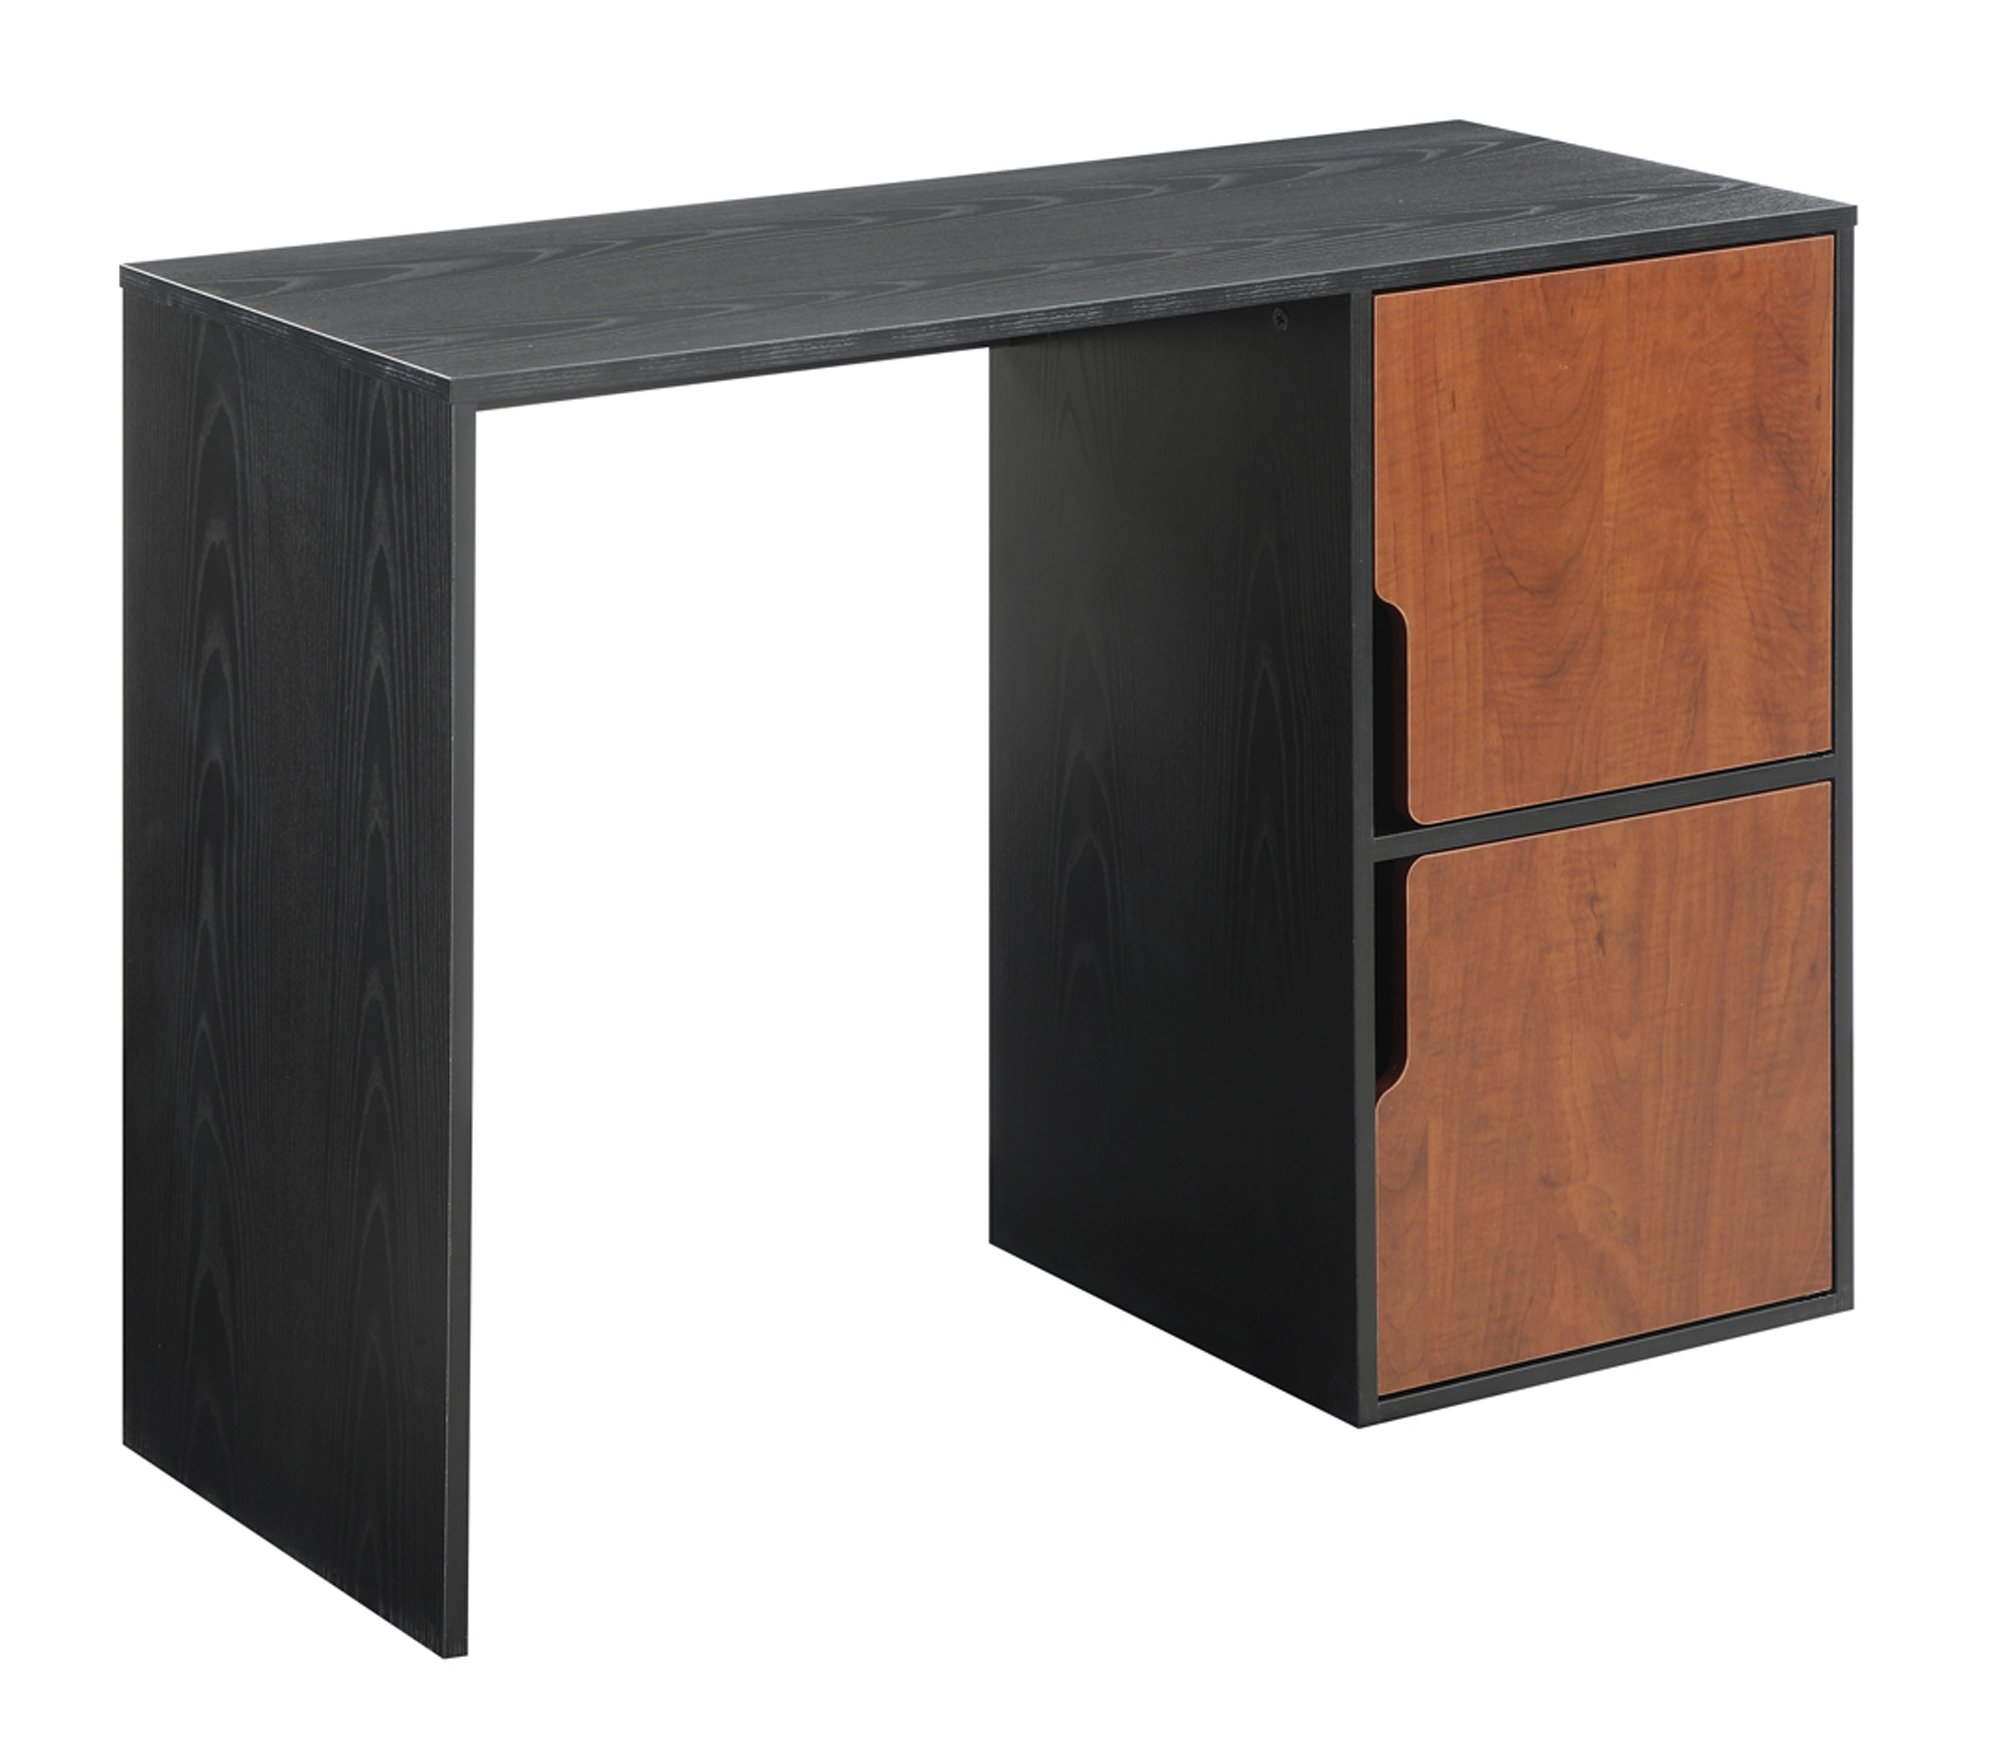 Convenience Concepts Student Desk with Storage Cabinets, Black